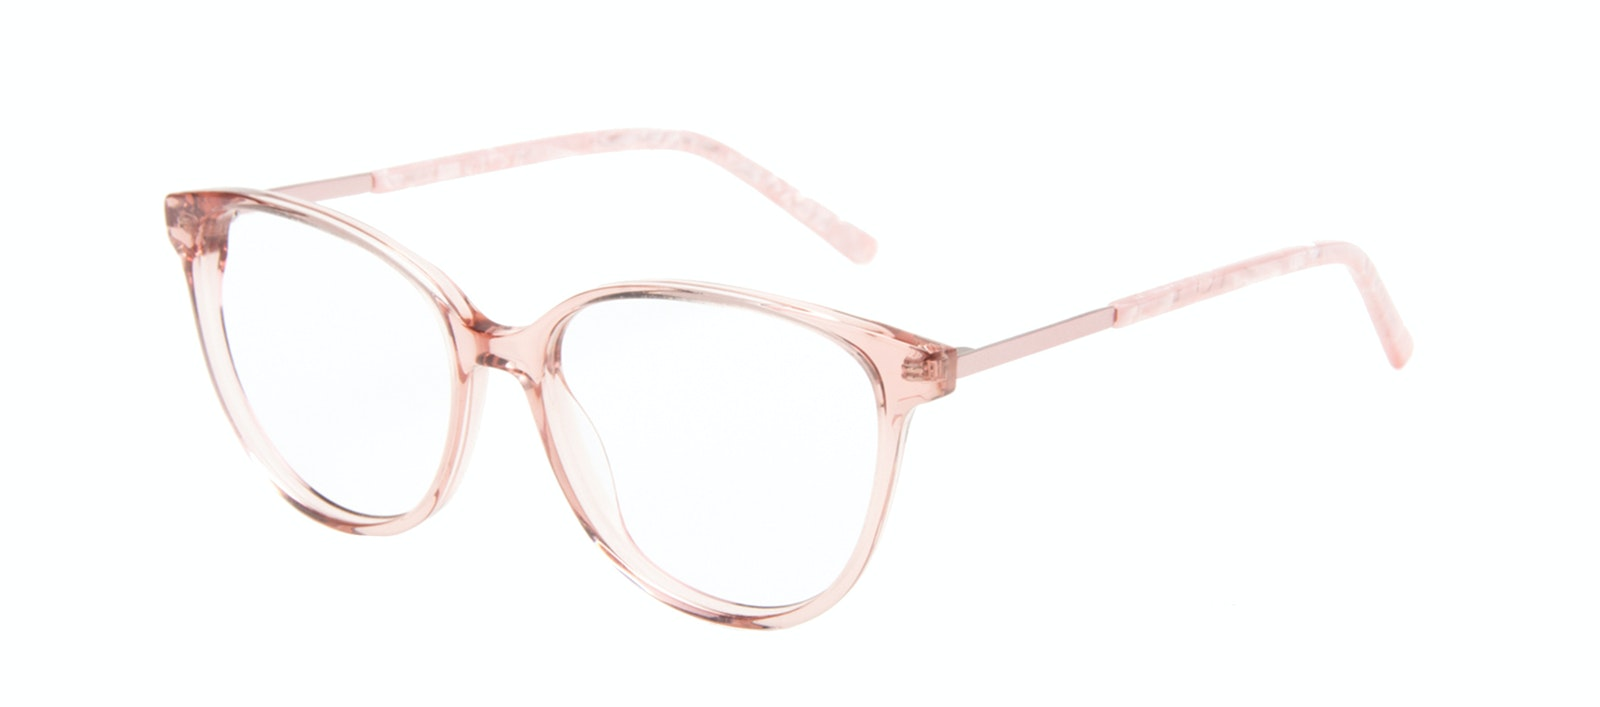 Affordable Fashion Glasses Cat Eye Eyeglasses Women Imagine II Rose Marble Tilt